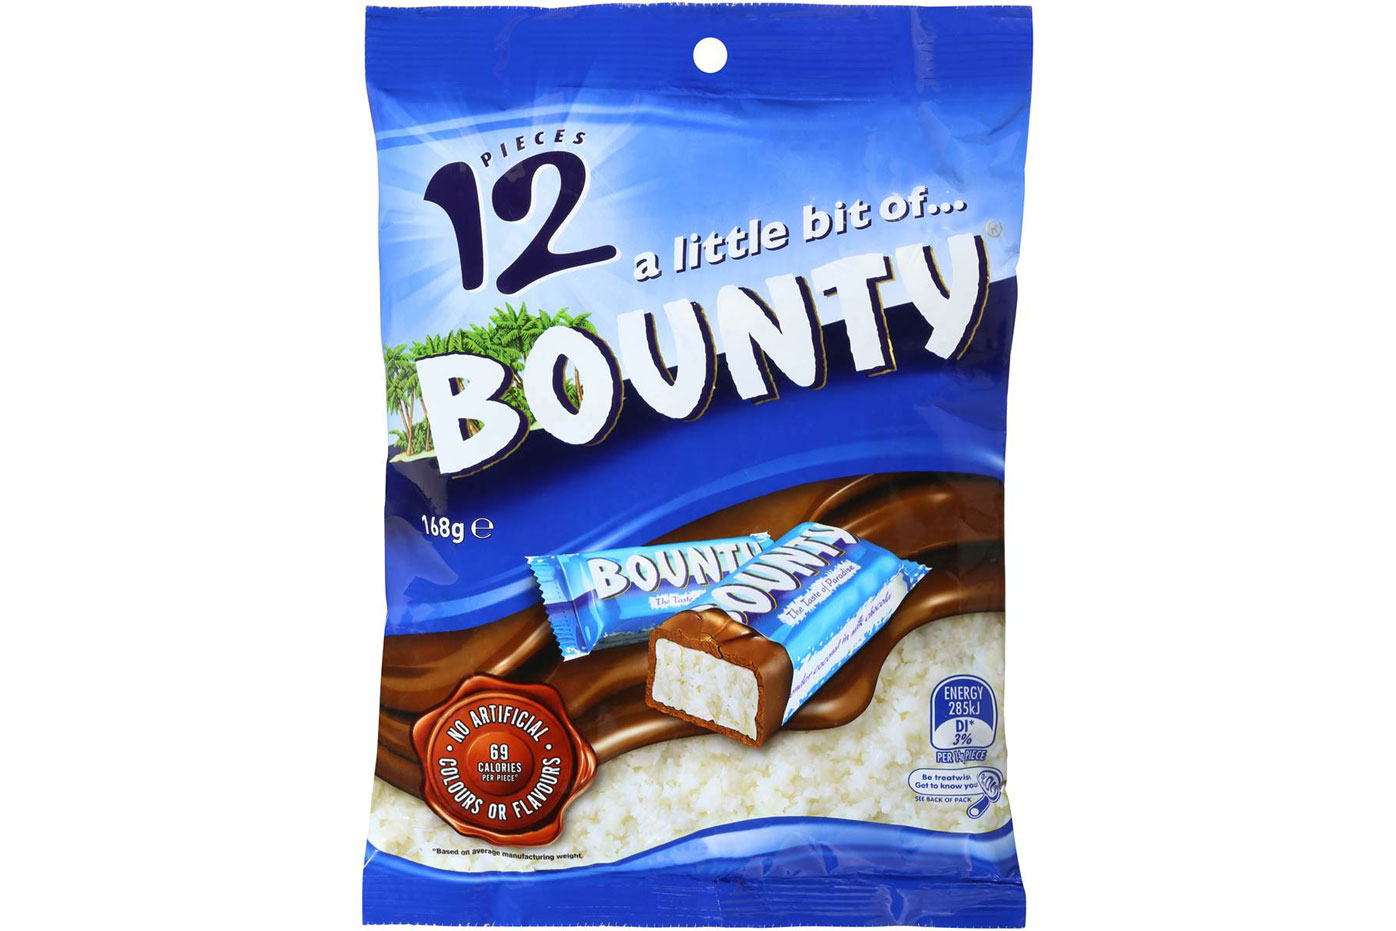 Fun-size Bounty: More than 1.5 teaspoons of sugar